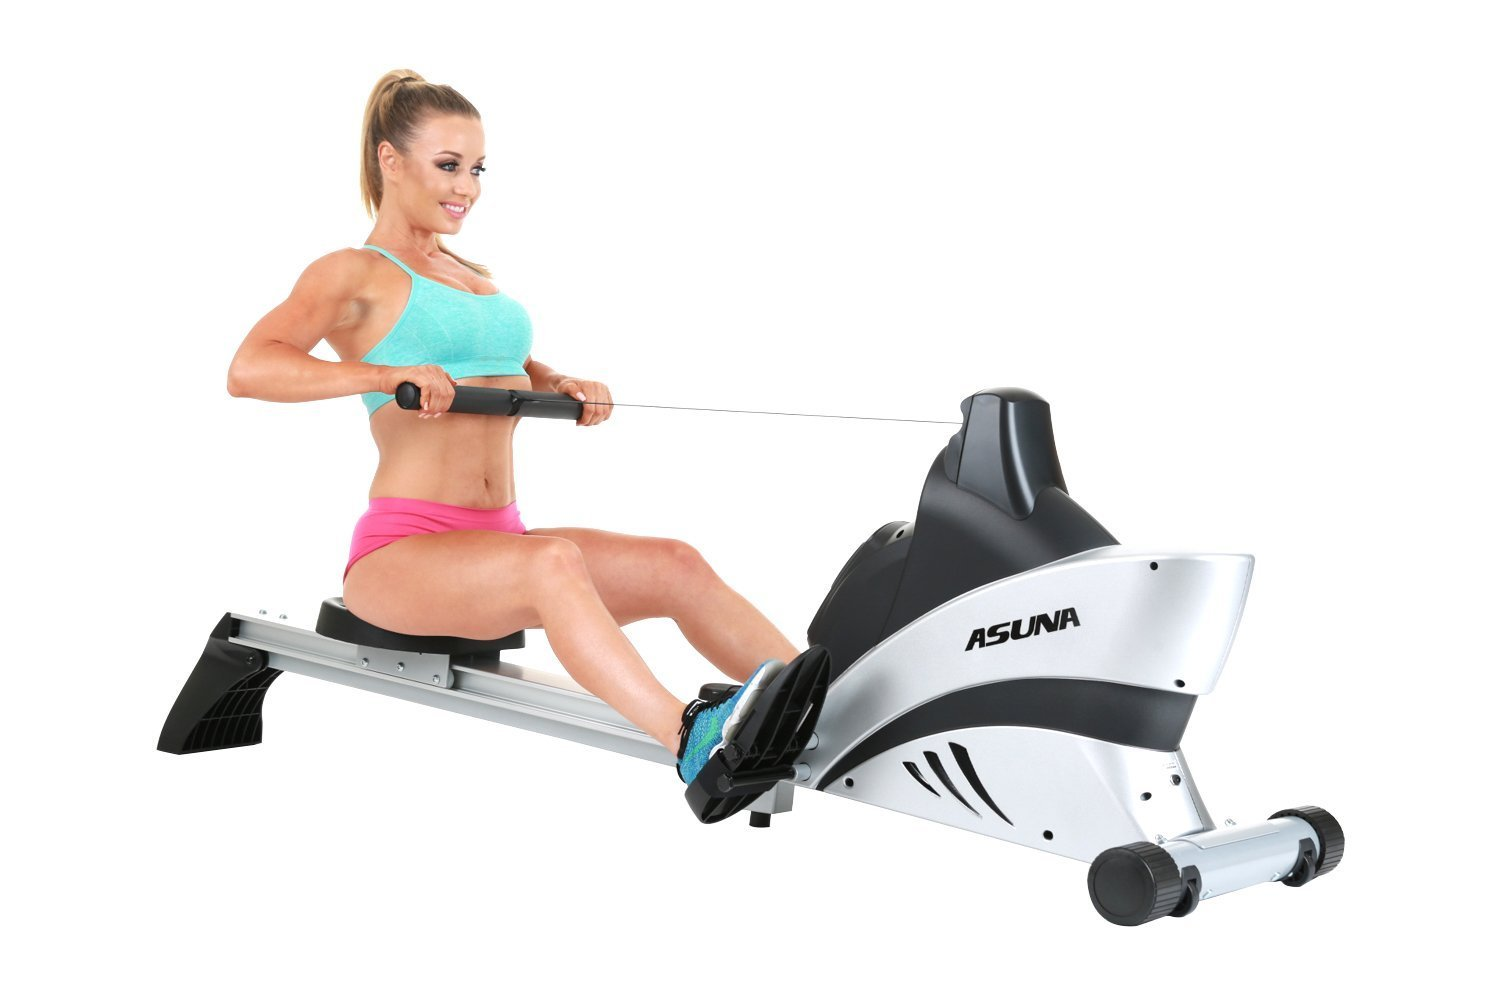 the Sunny Health & Fitness ASUNA 4500 Magnetic Rowing Machine in full glory